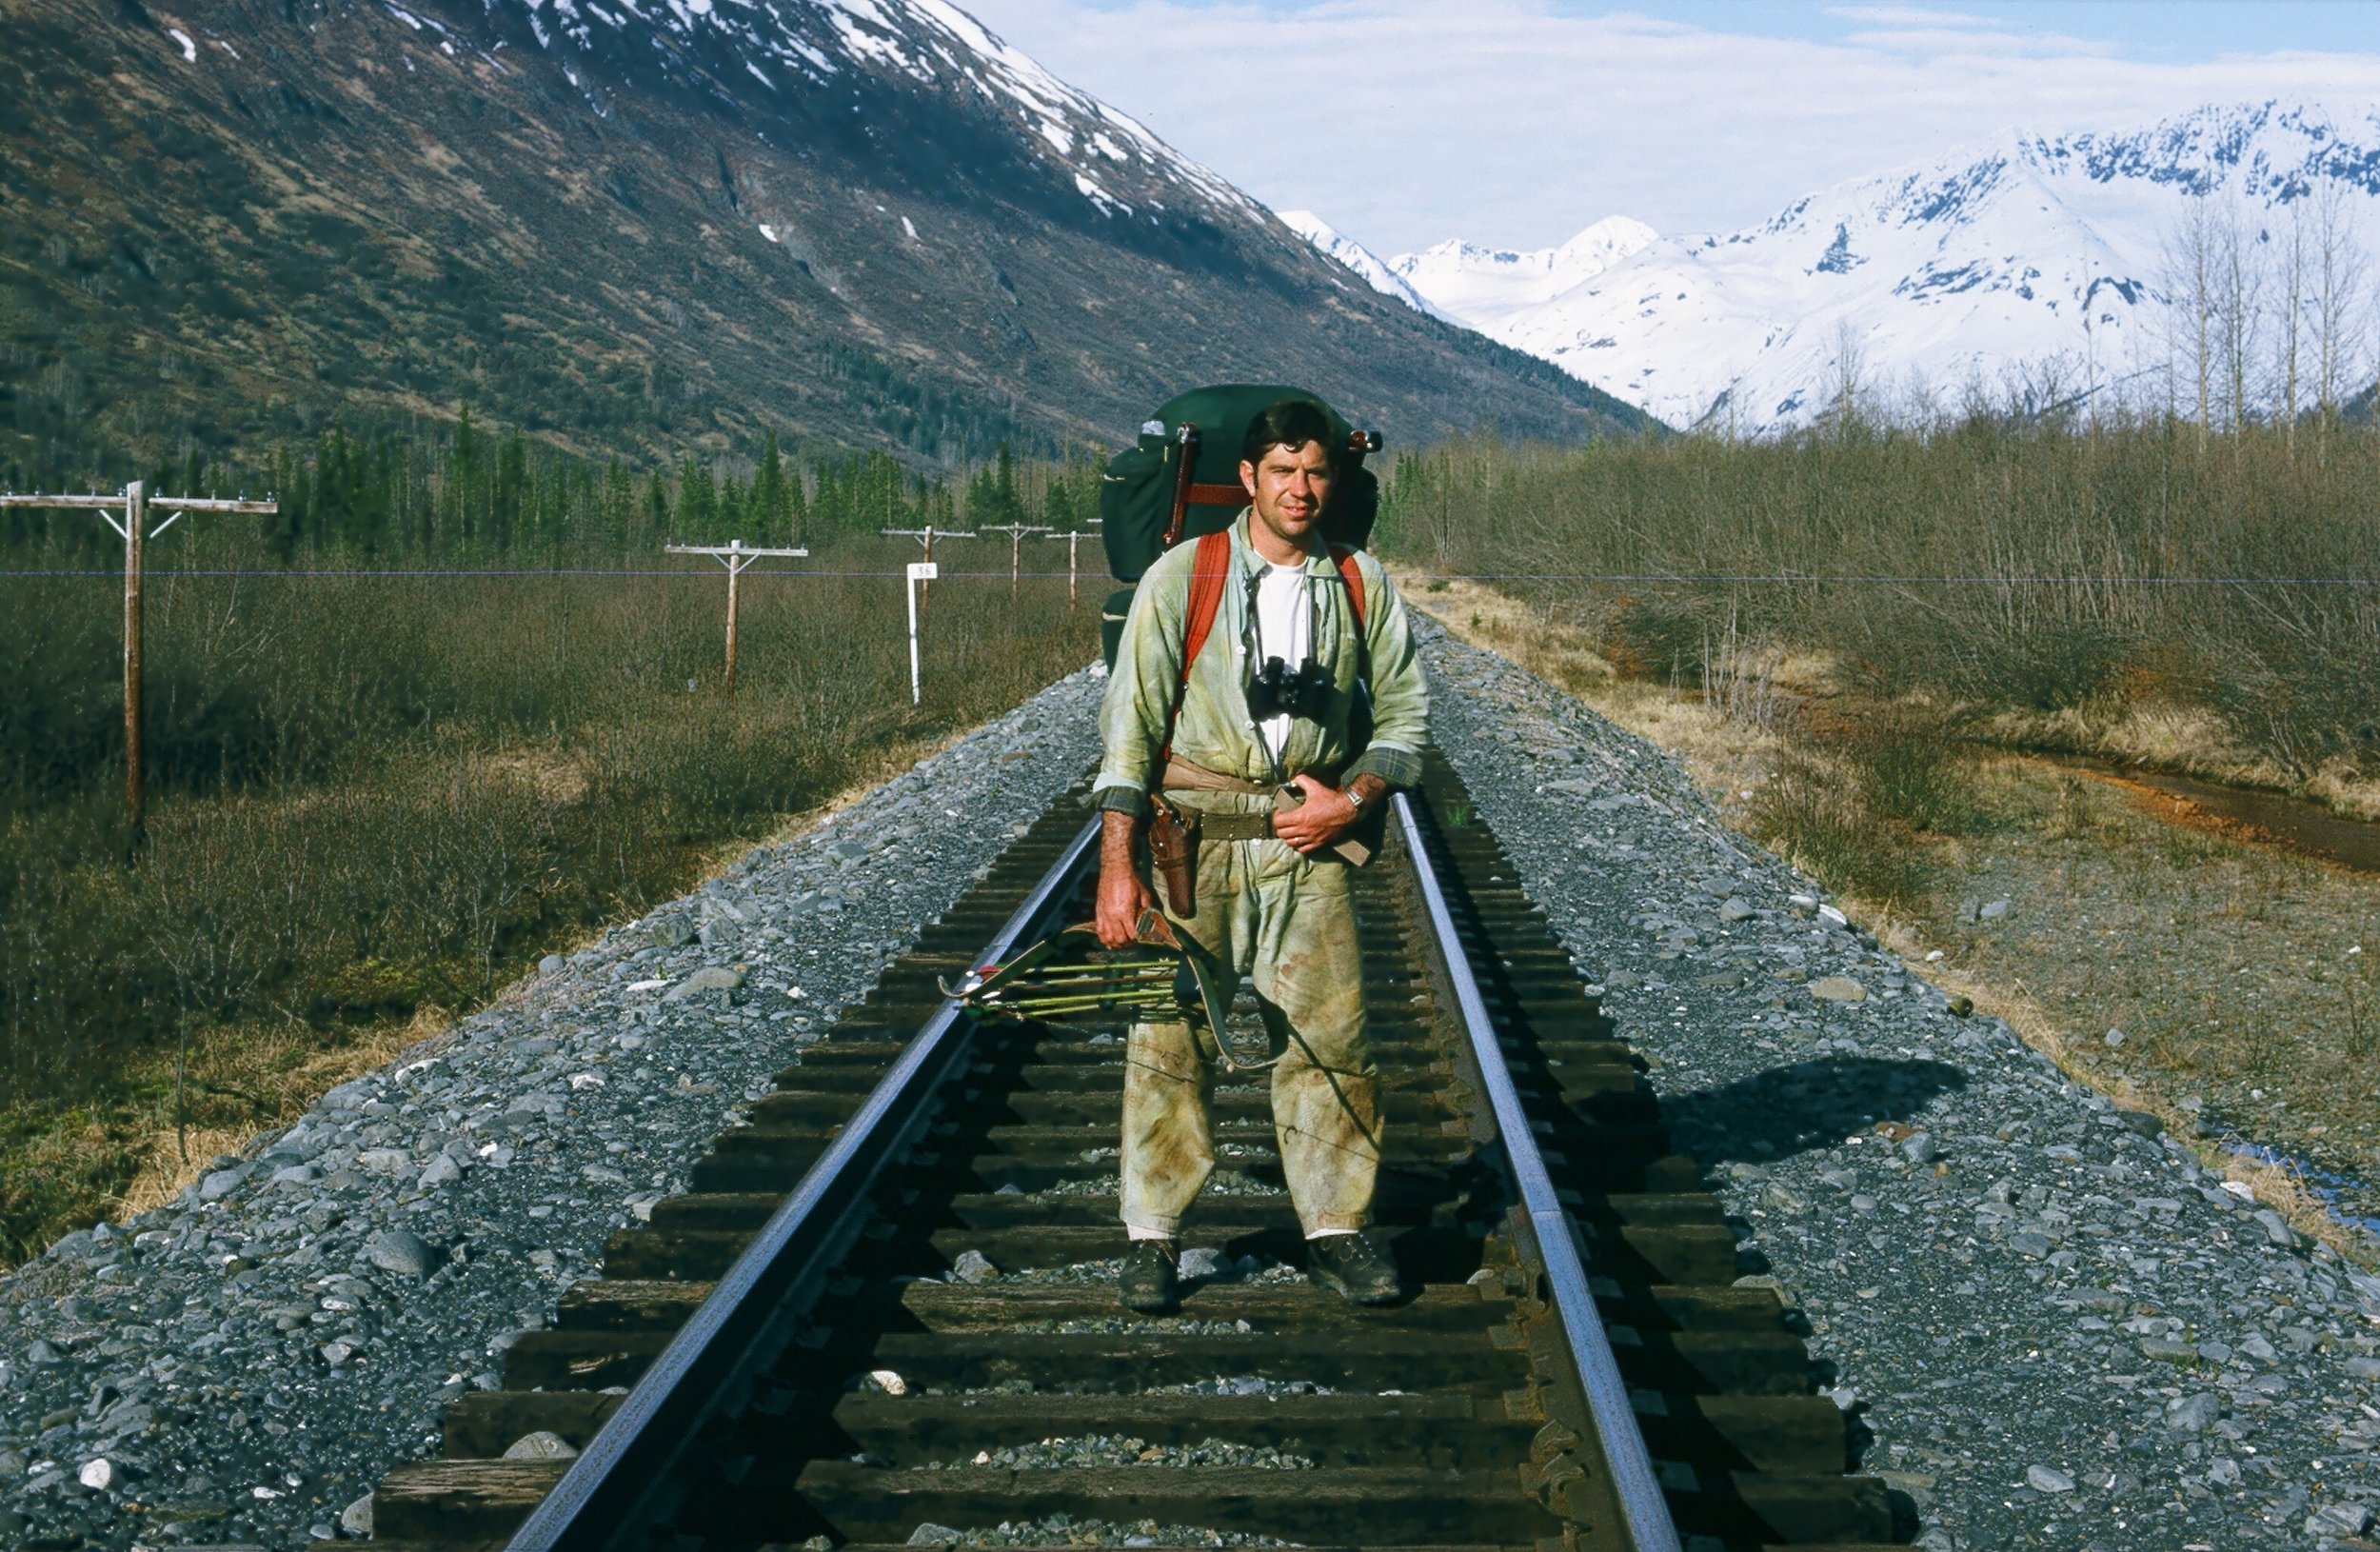 This is where we started our long 10 1/2 mile walk on the railroad tracks. This was one of our spring black bear hunting trips.